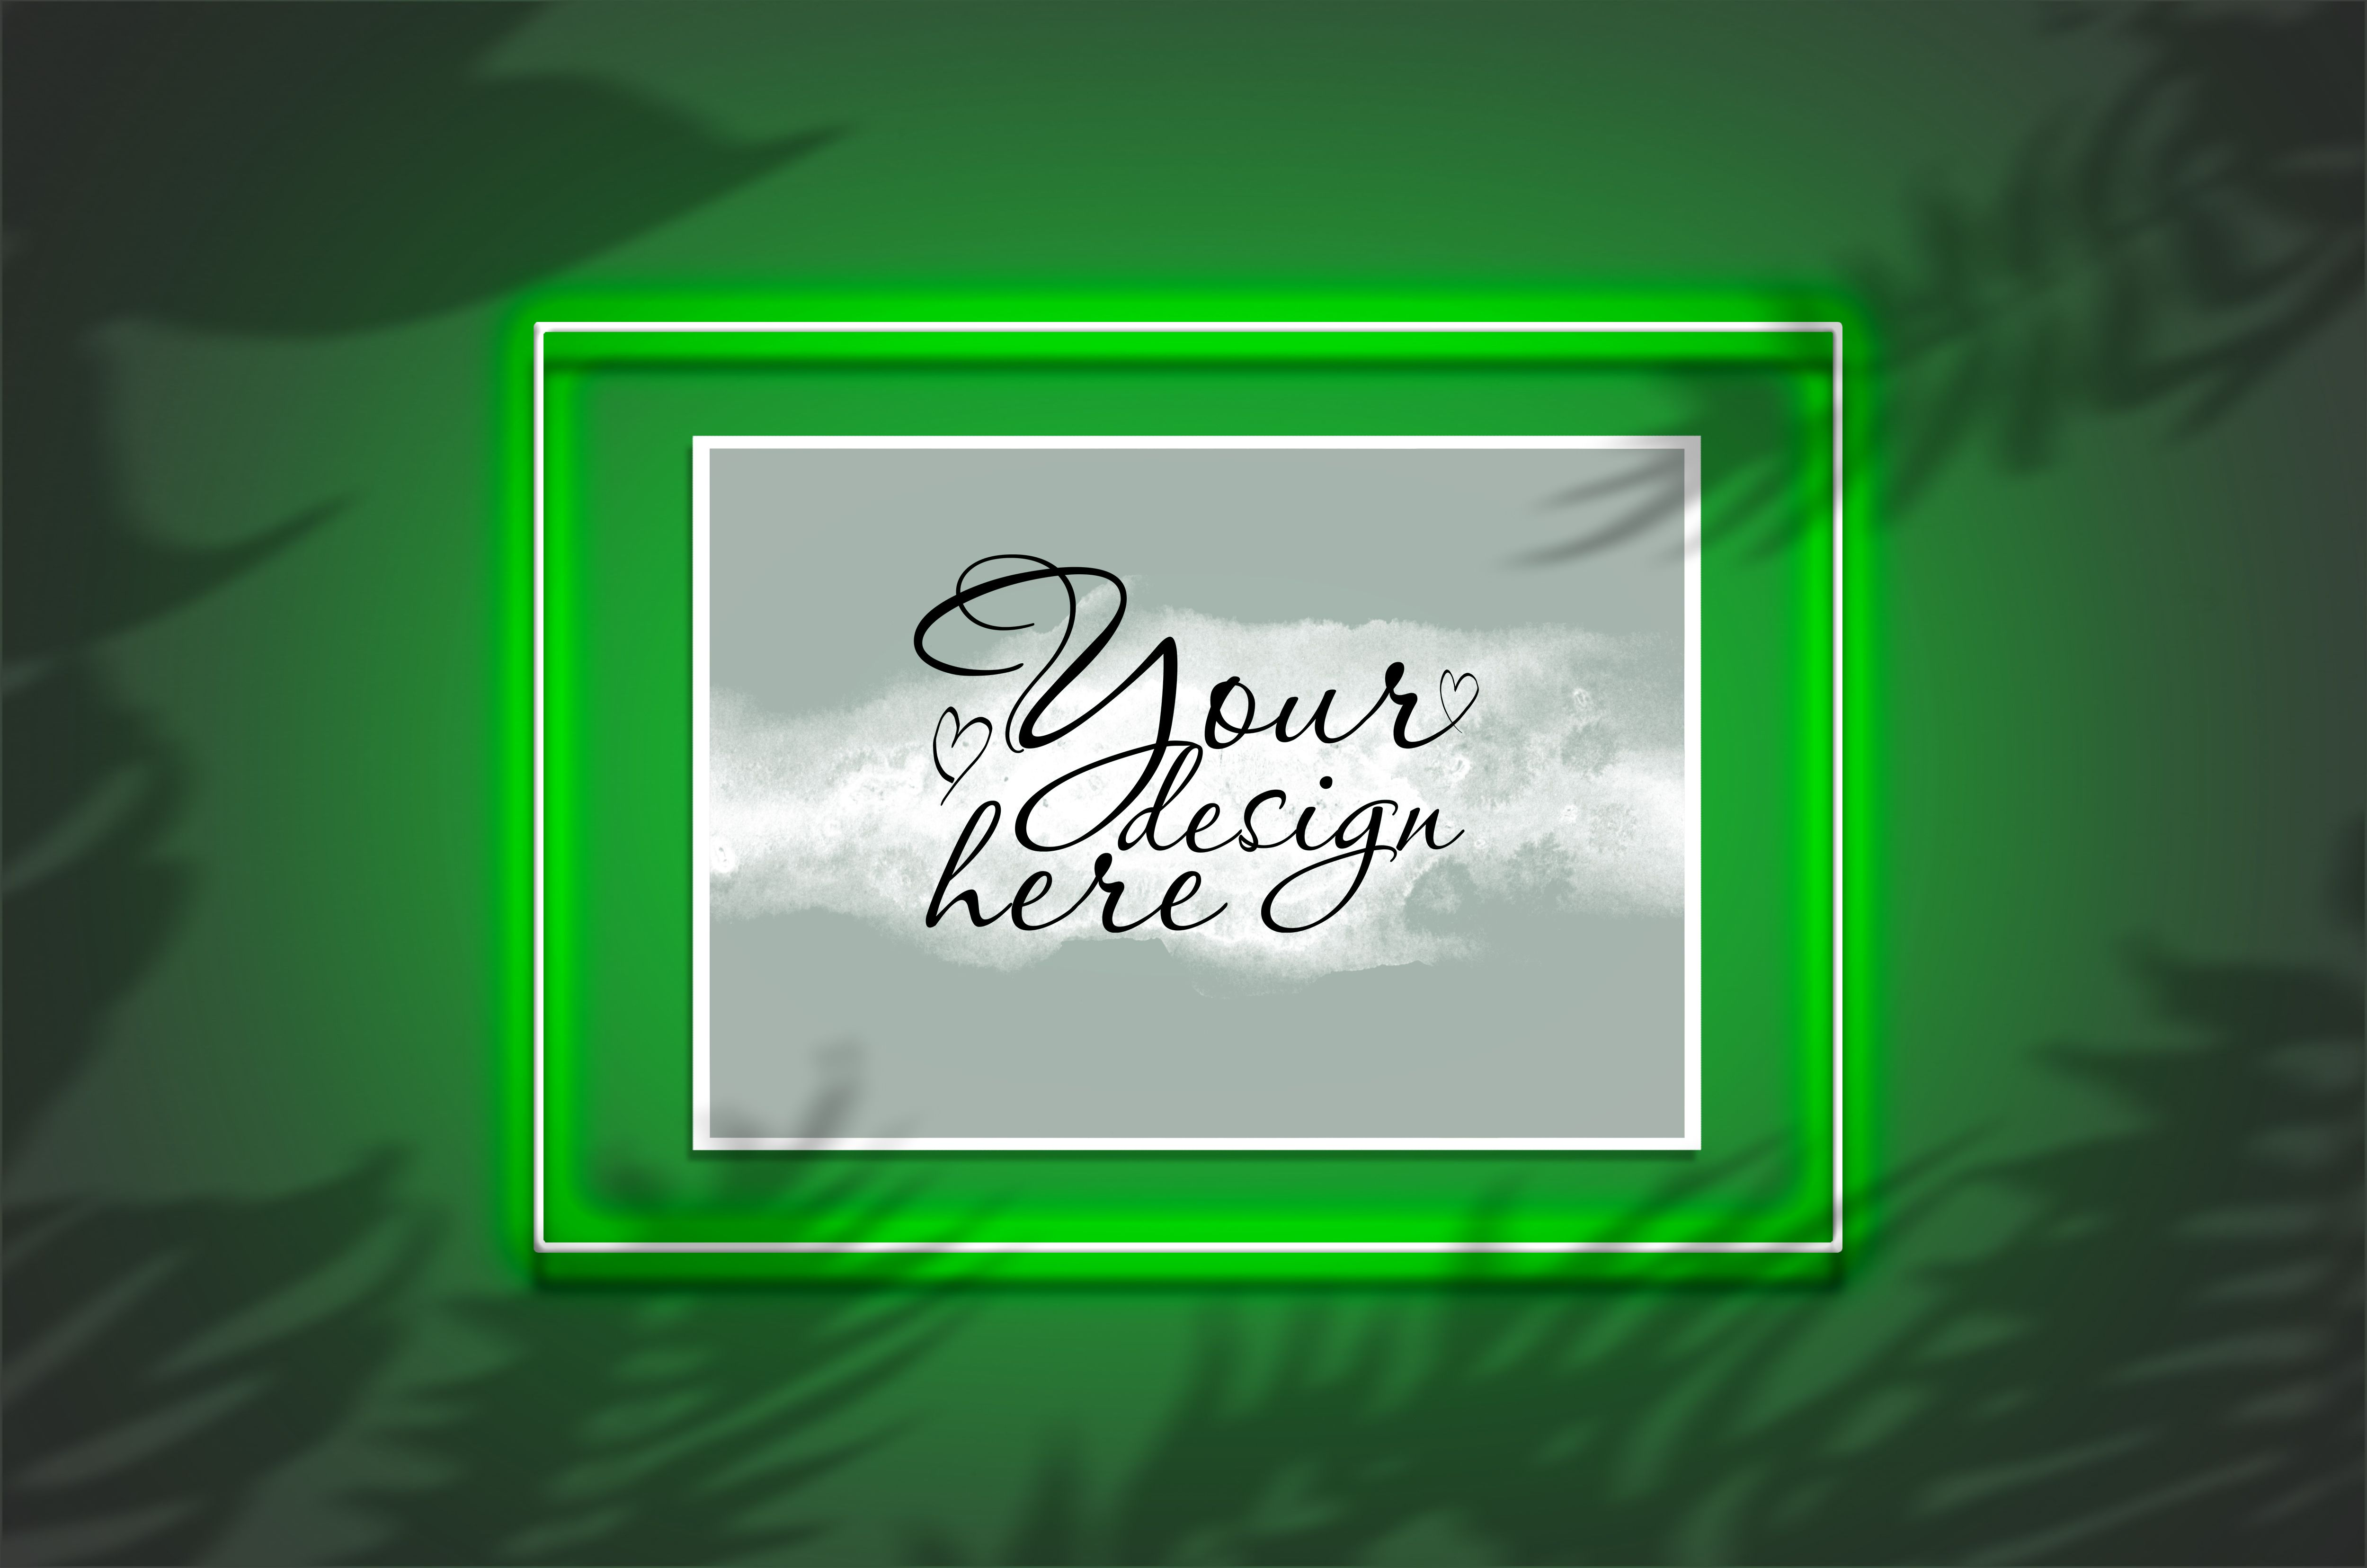 Download Mockup Poster In A Neon Green Frame Graphic By Natalia Arkusha Creative Fabrica Design Mockup Free Poster Mockup Poster Mockup Psd